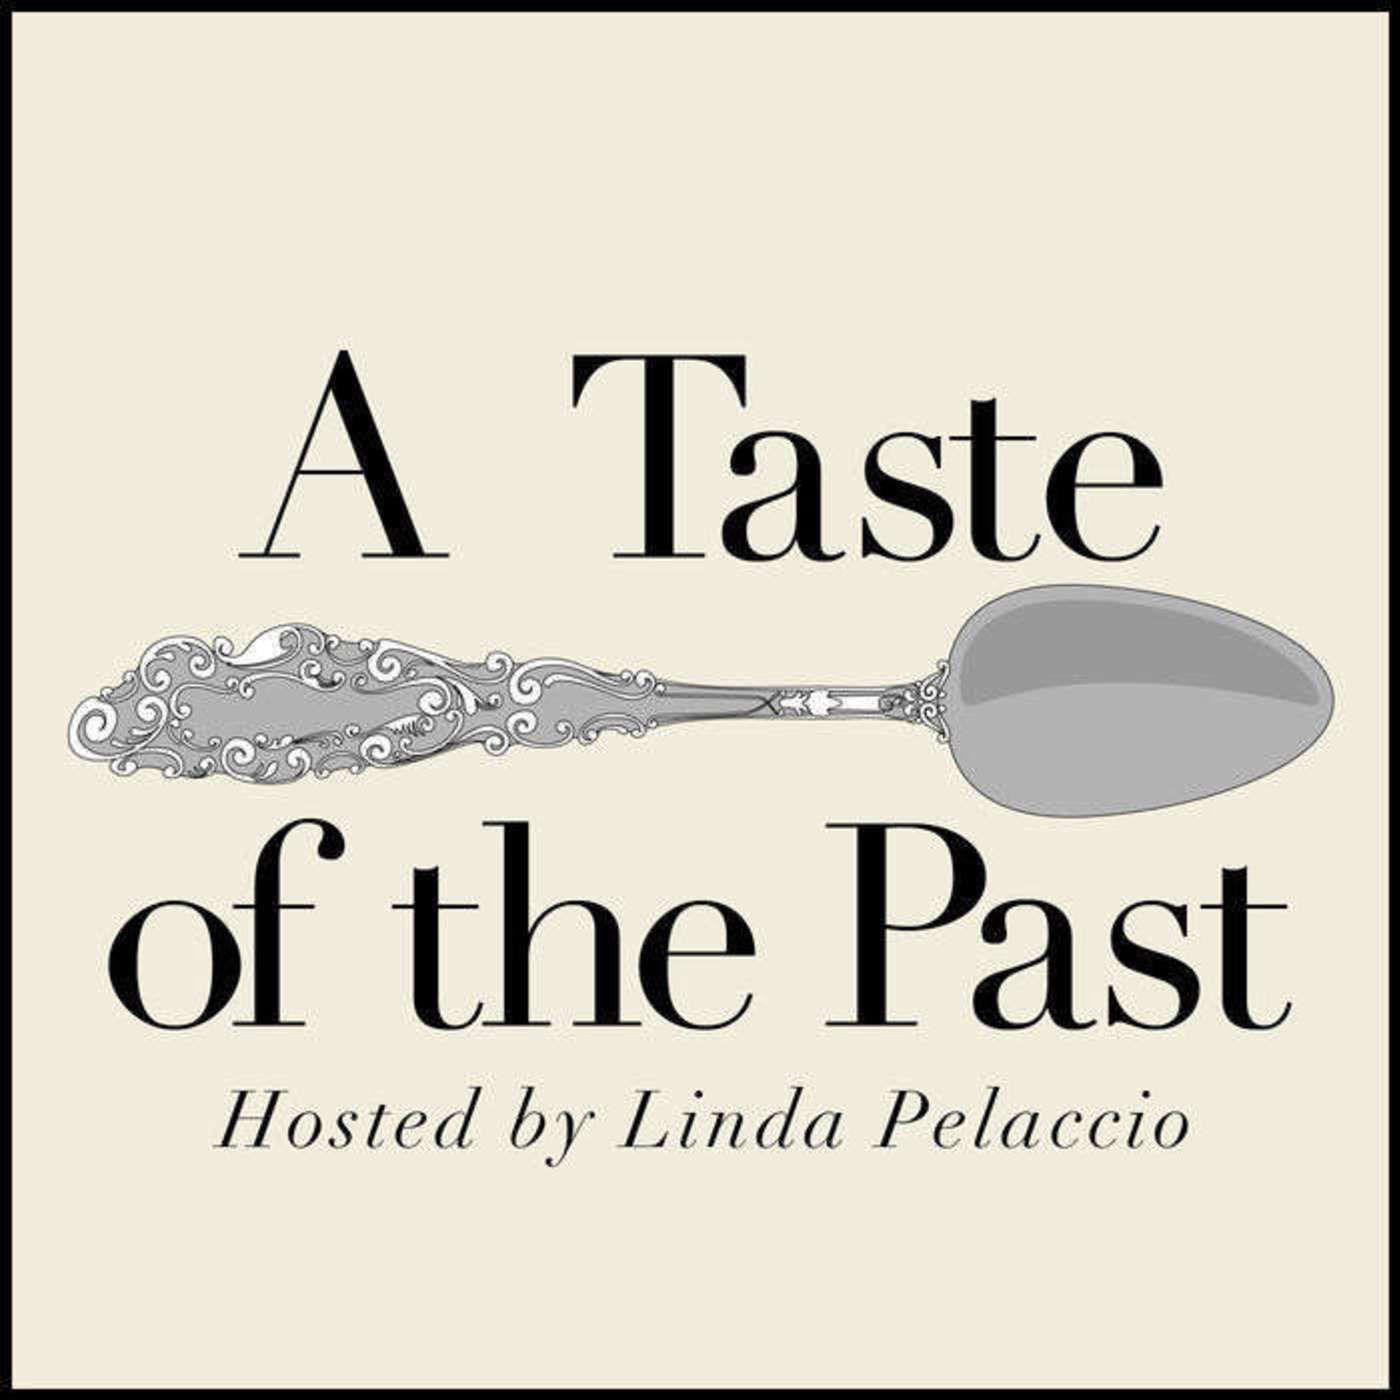 Episode 14: Passover Cuisine with Jayne Cohen